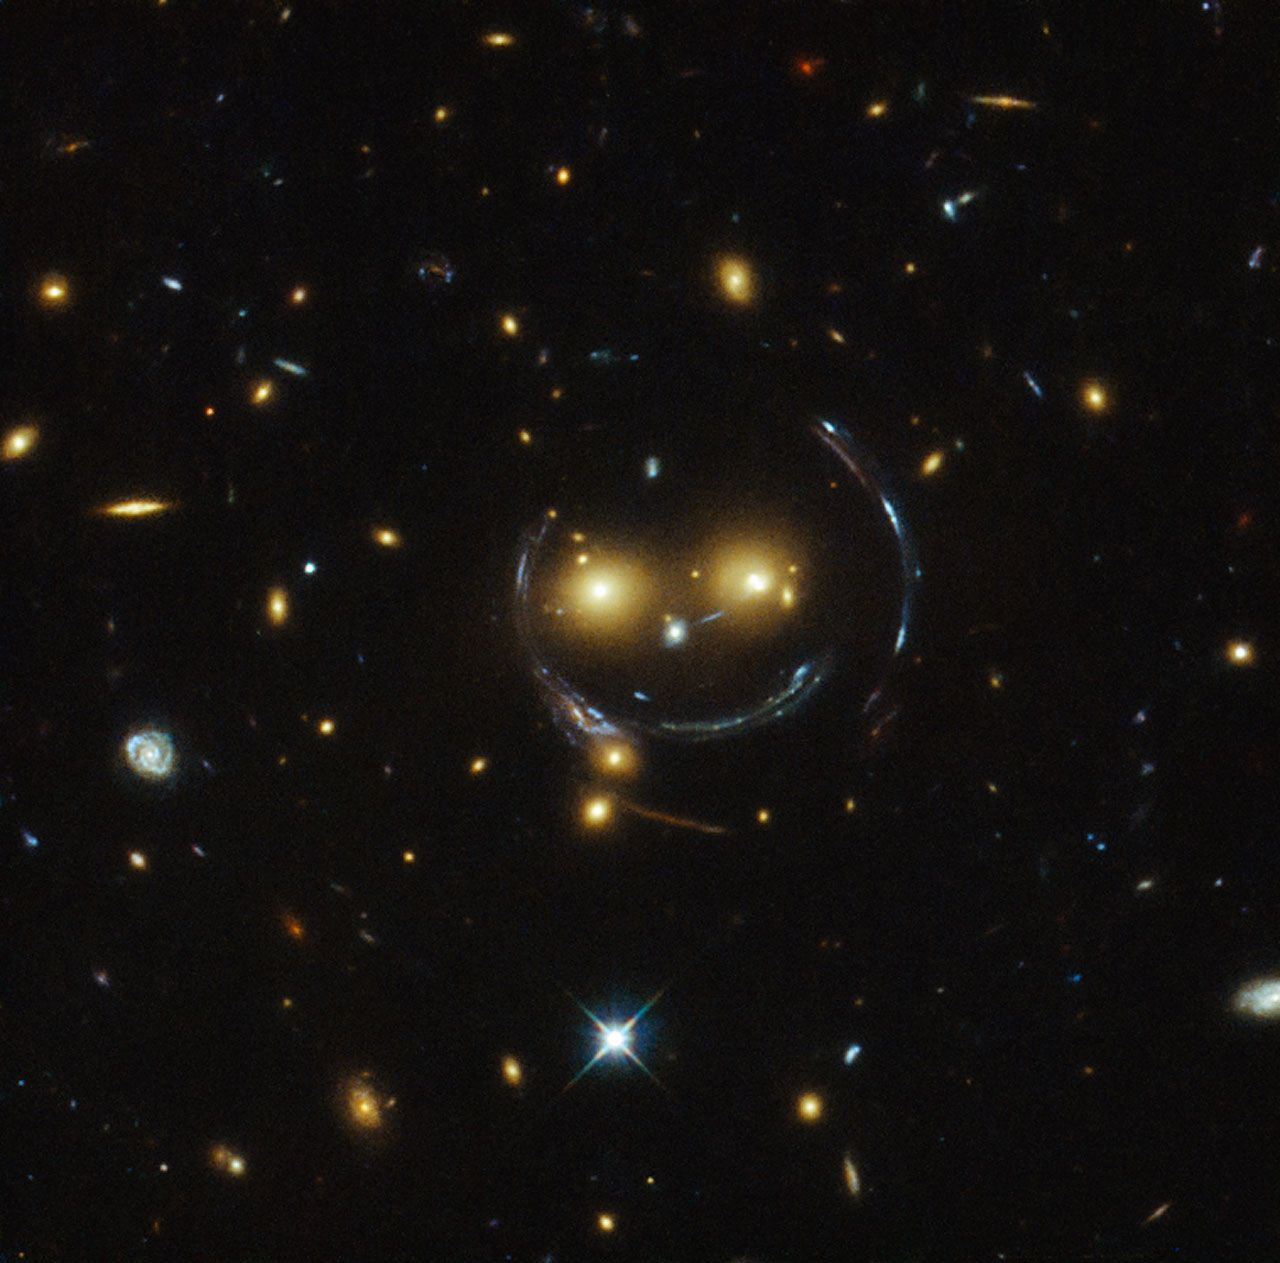 The Hubble telescope found a smiley face in space. The science behind it is even cooler.